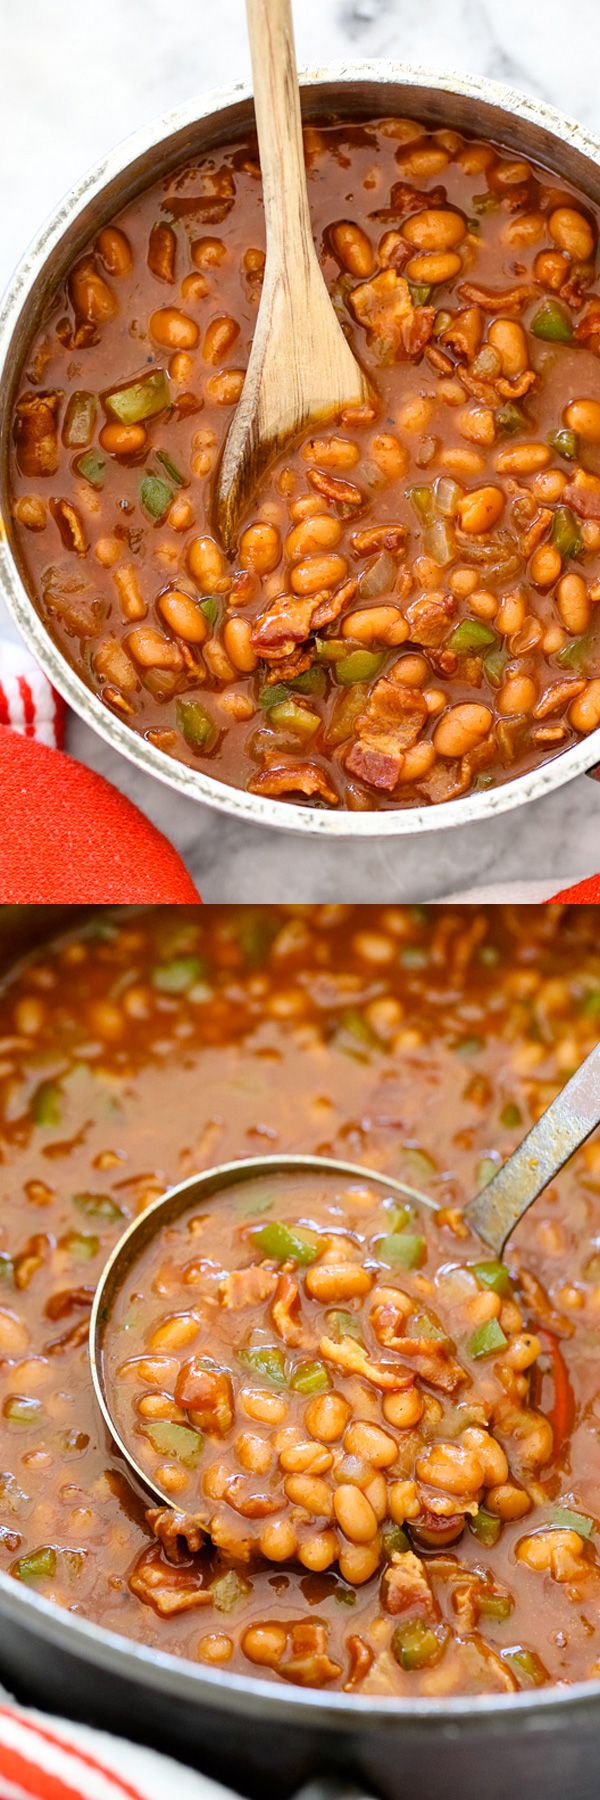 Bacon and tangy yellow mustard make these BBQ Beans a family favorite | foodiecrush.com